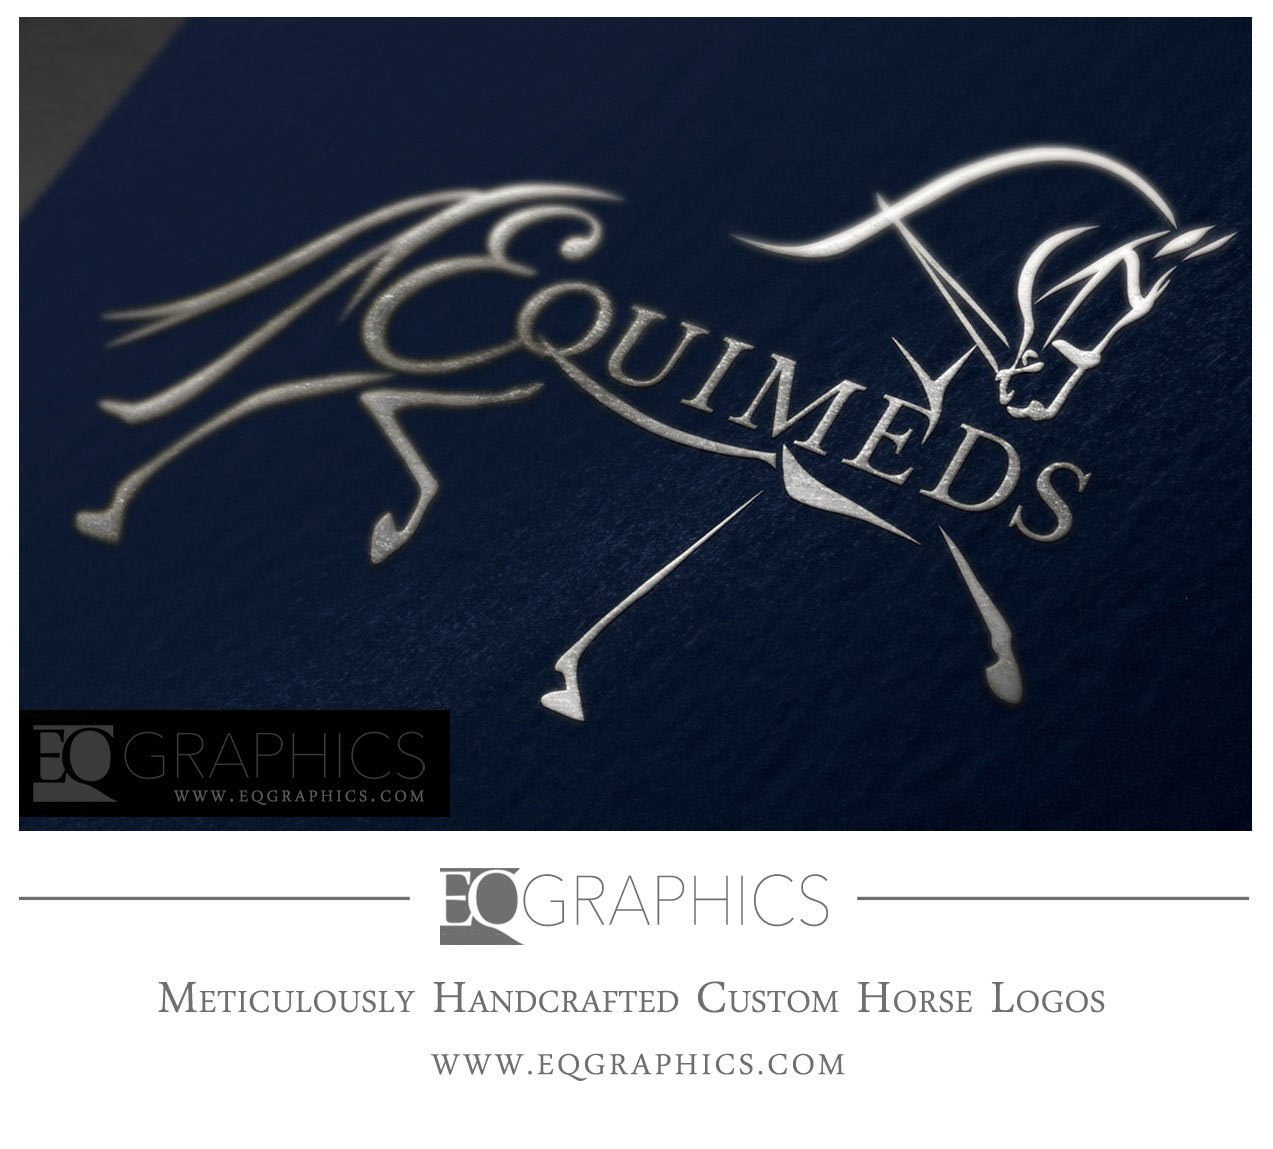 Equimeds Veterinary Medicine Logo Australia Veterinarian Medical Supply Design by EQ Graphics